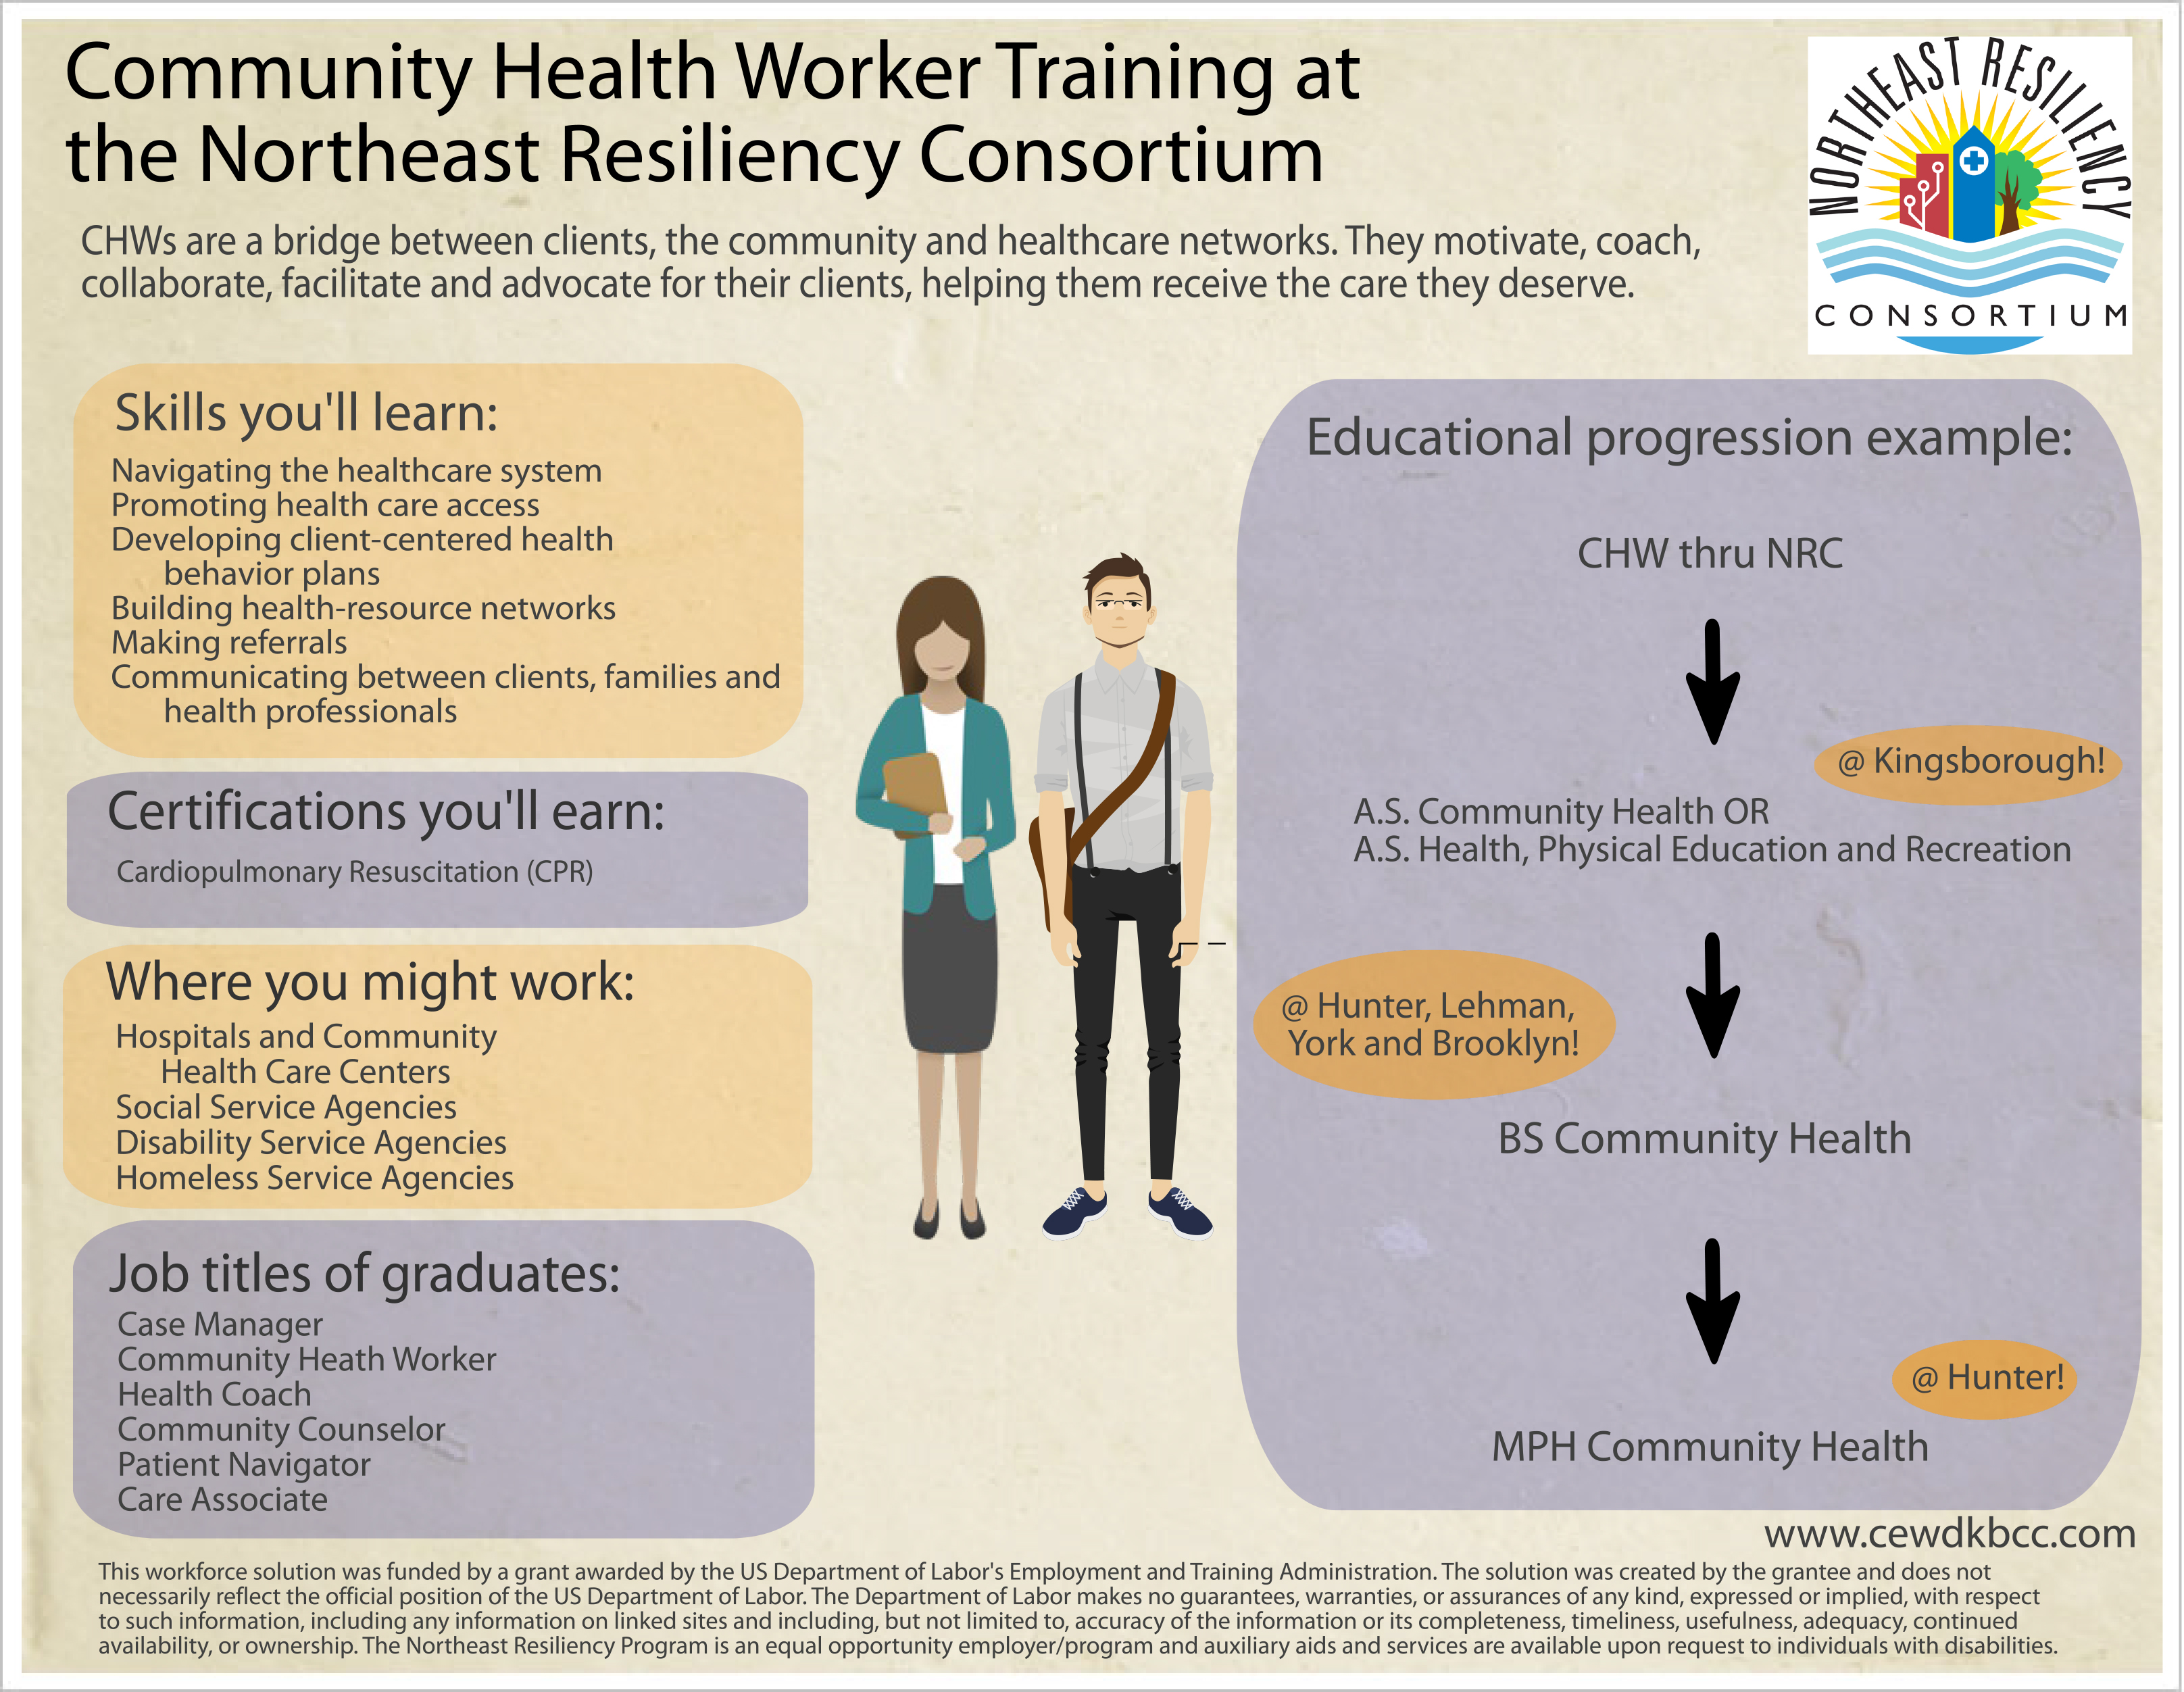 community health worker training cewd the community health worker chw training program through the northeast resiliency consortium prepared students to work in their communities as patient